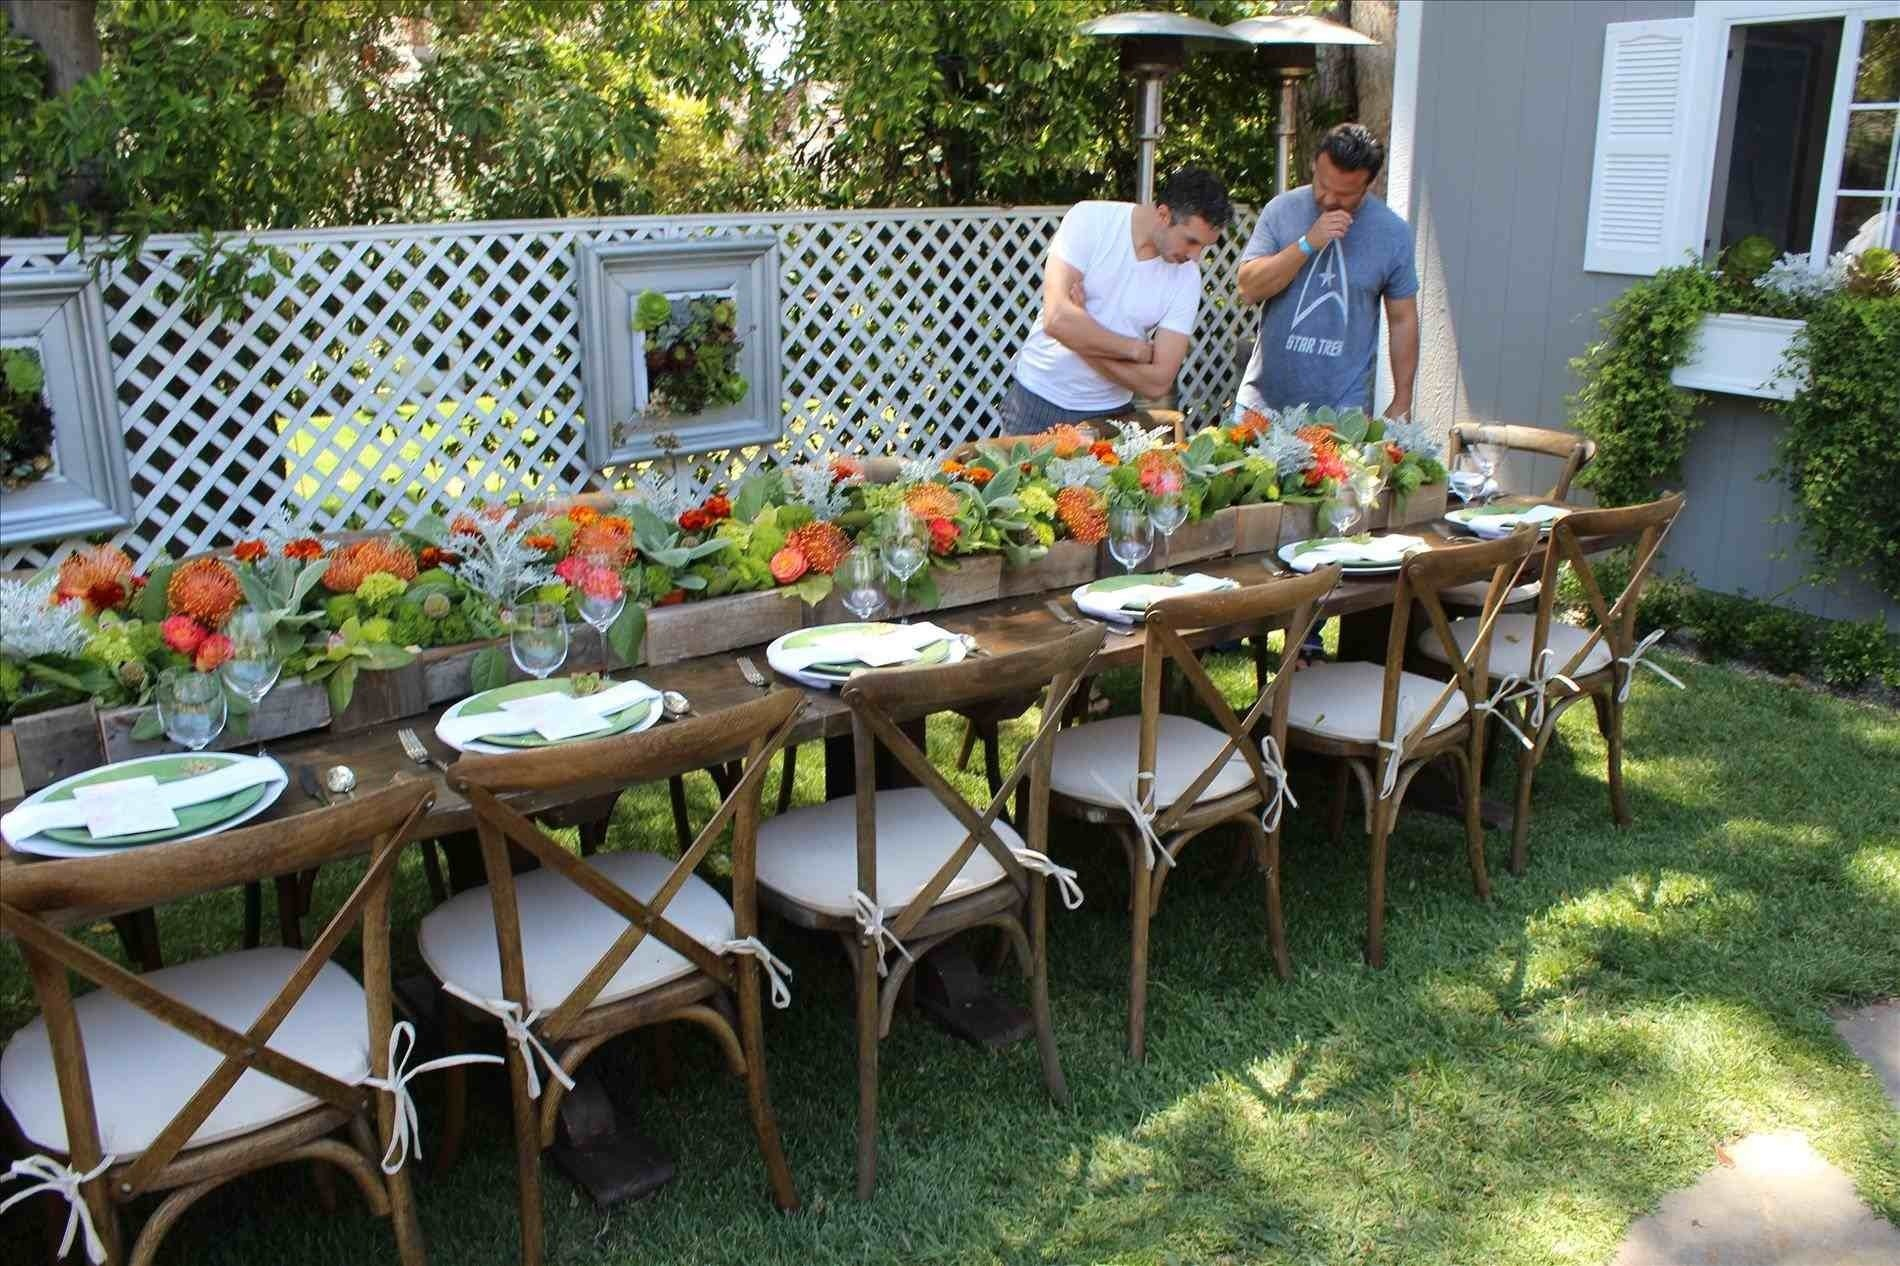 10 stunning outdoor party ideas for adults